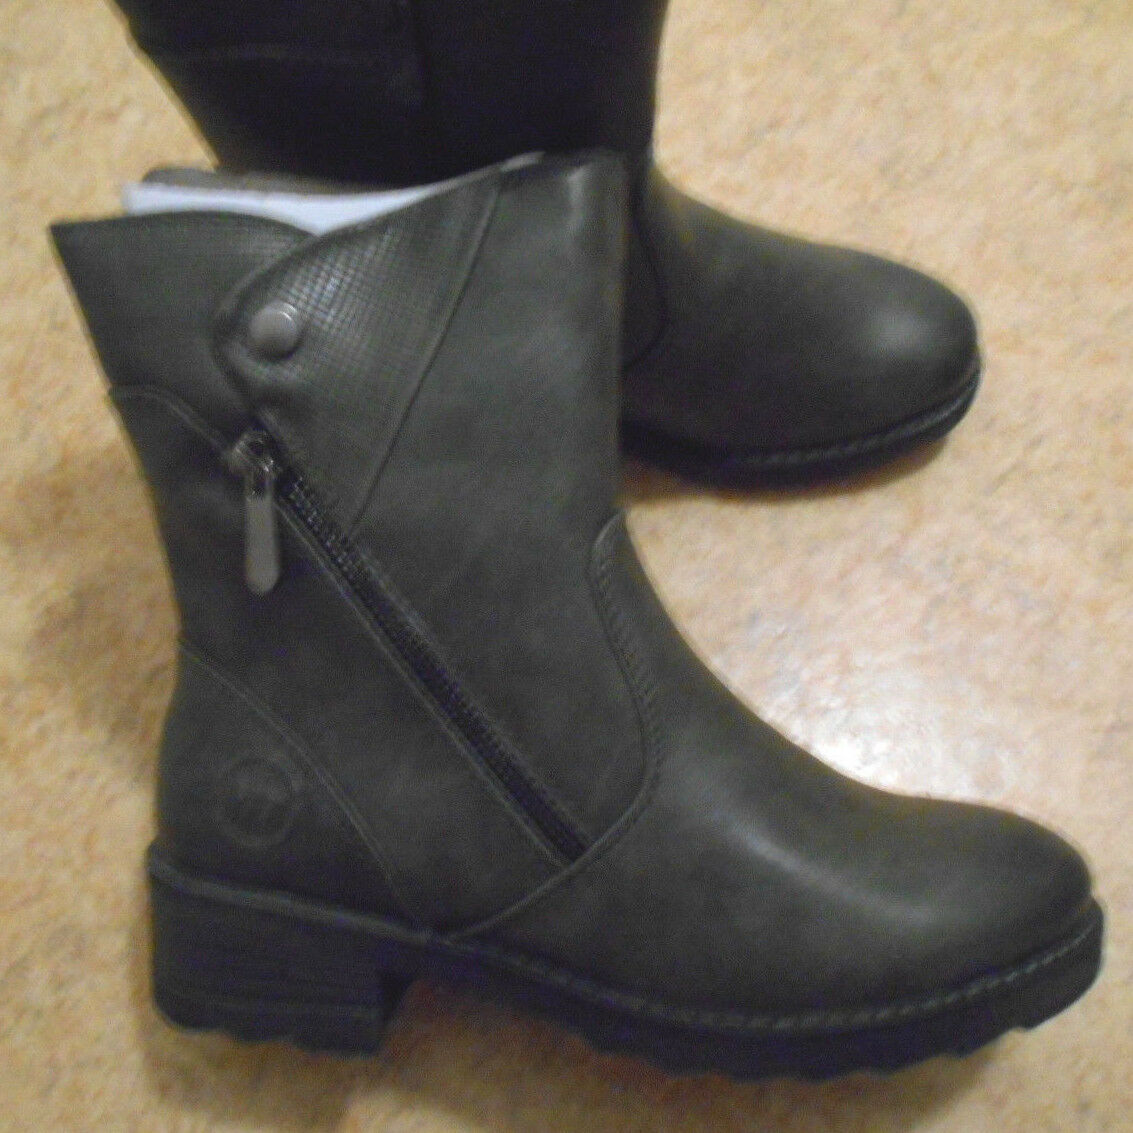 NEUF-TOP-Femmes-Bottines Taille 37 + 38 gris  NEUF  MARCO MARCO MARCO TOZZI dc10f1